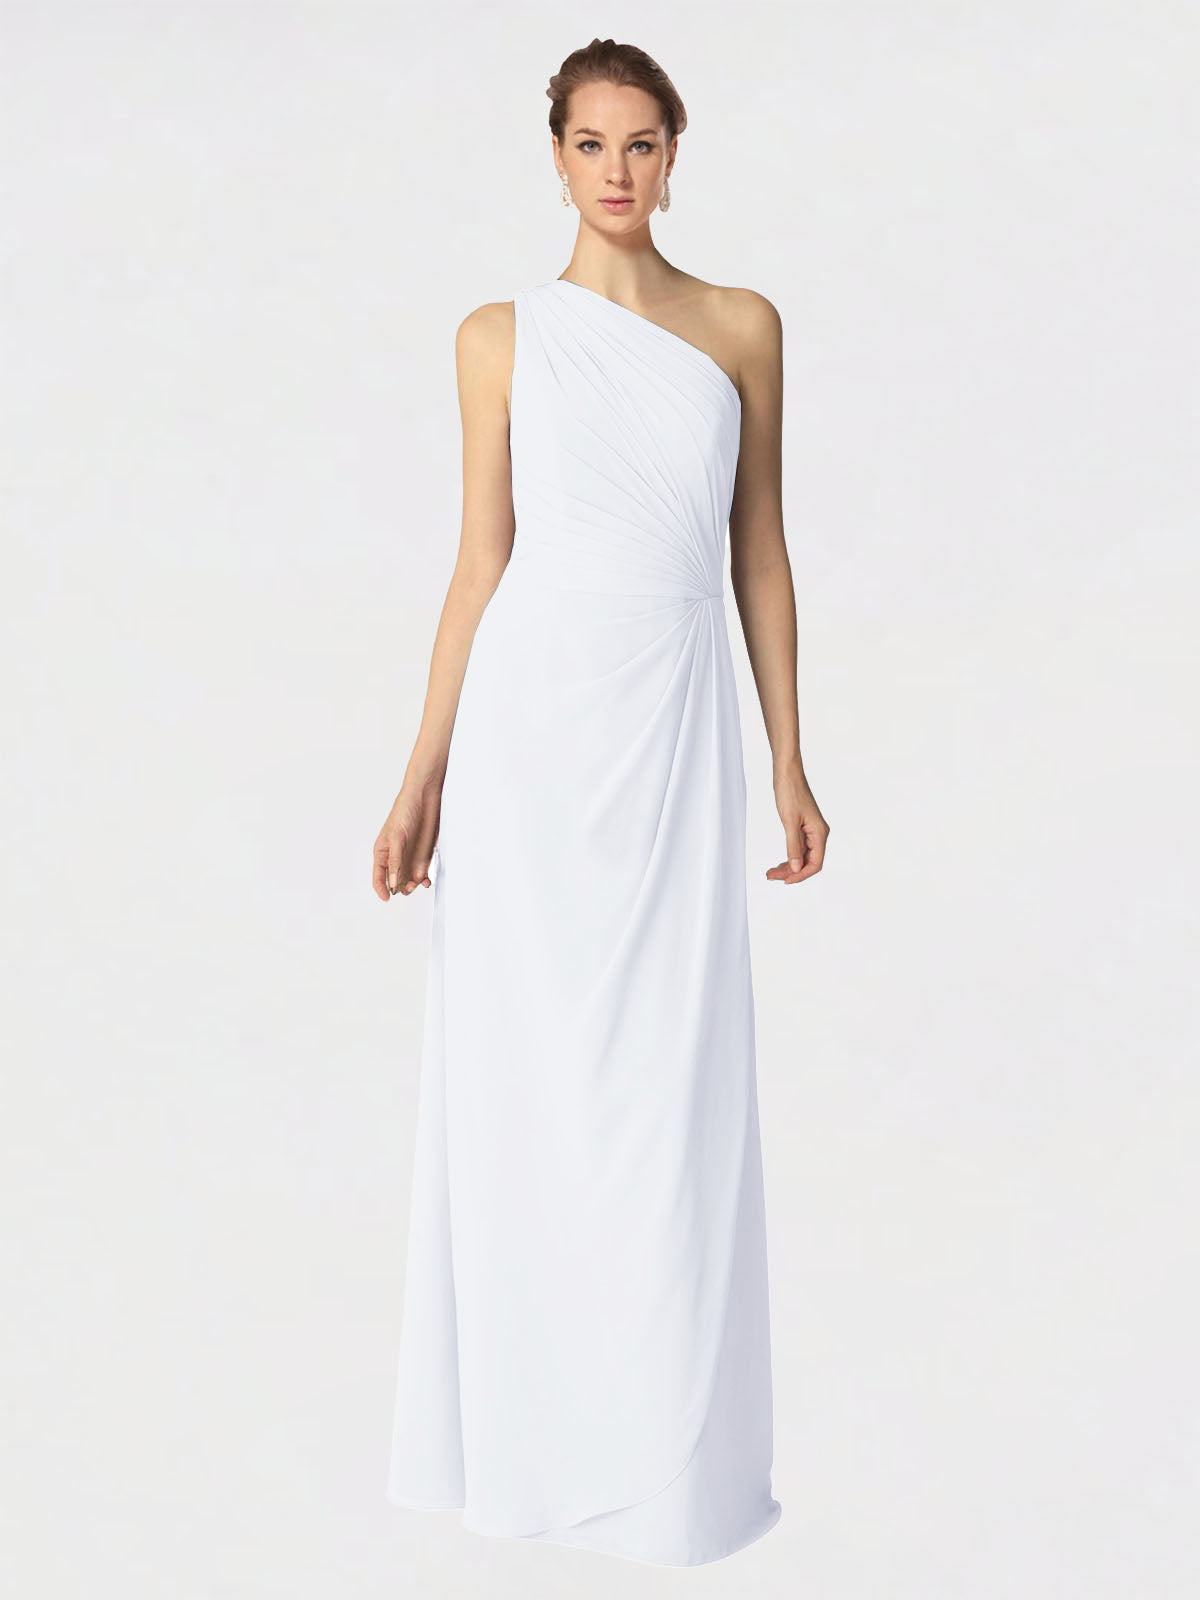 Long A-Line One Shoulder Sleeveless White Chiffon Bridesmaid Dress Aurora